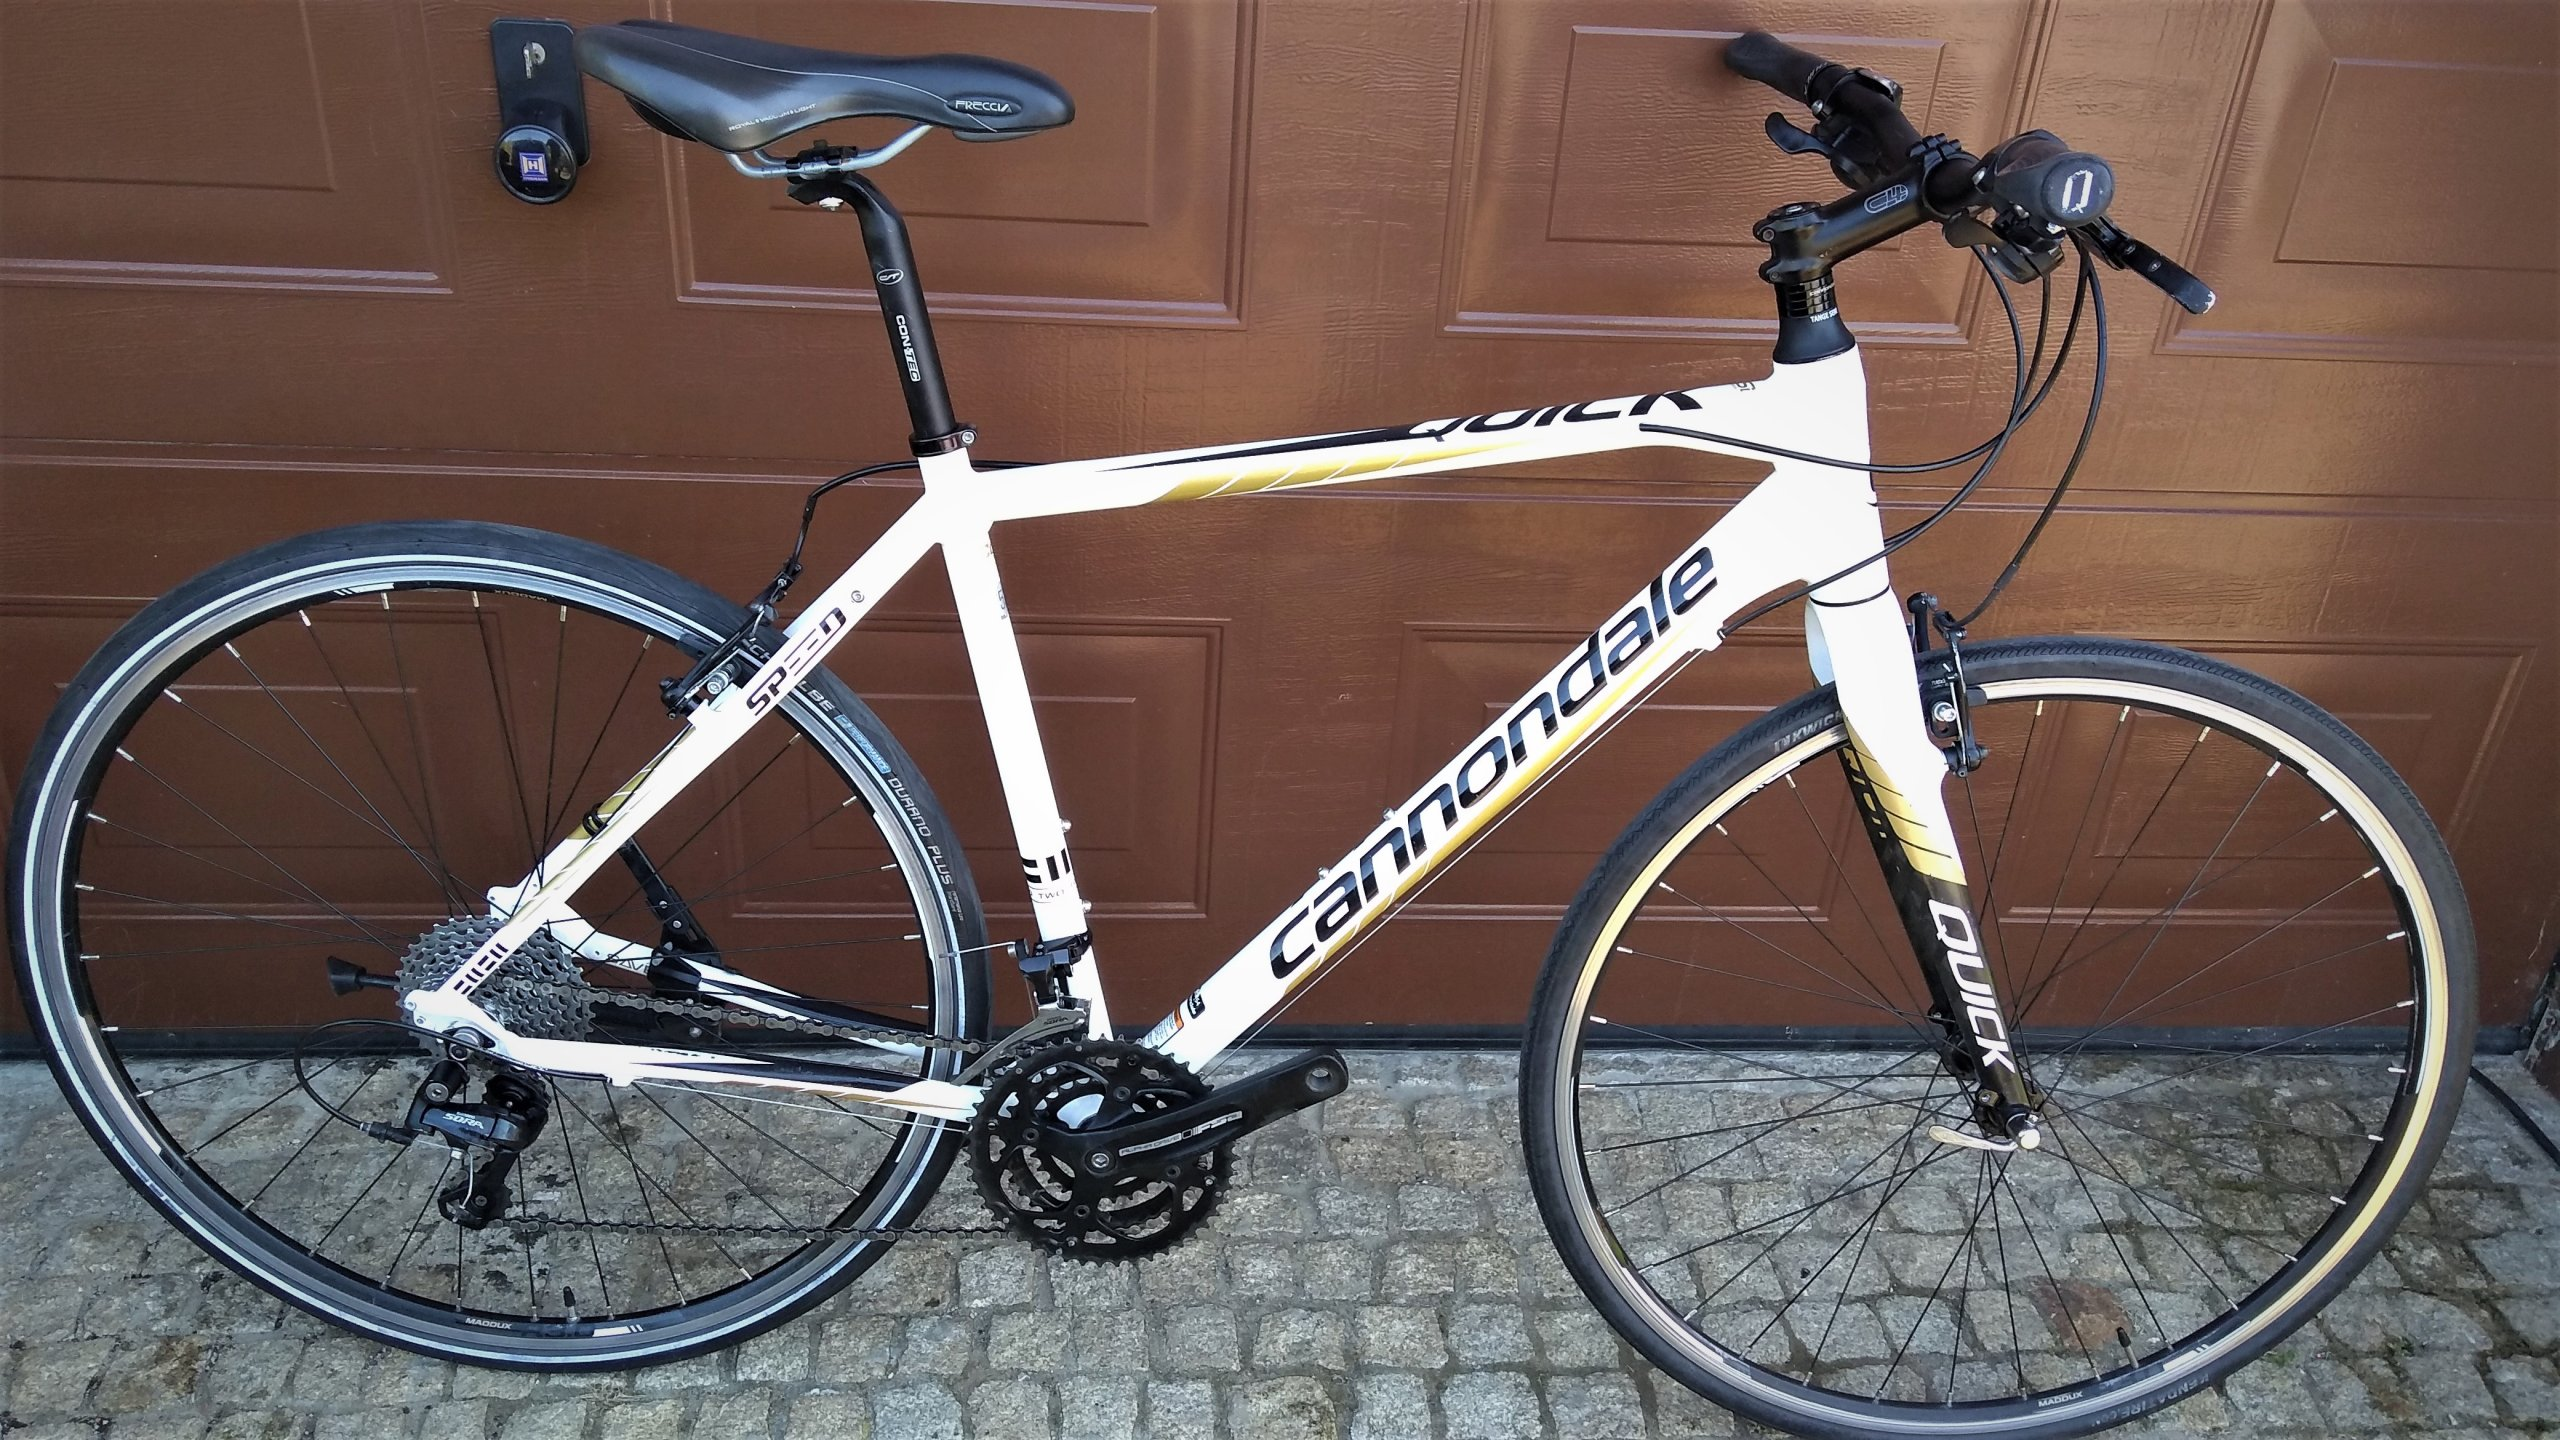 Cannondale Quick Speed 2  -50%% nowy 3700zł carbon